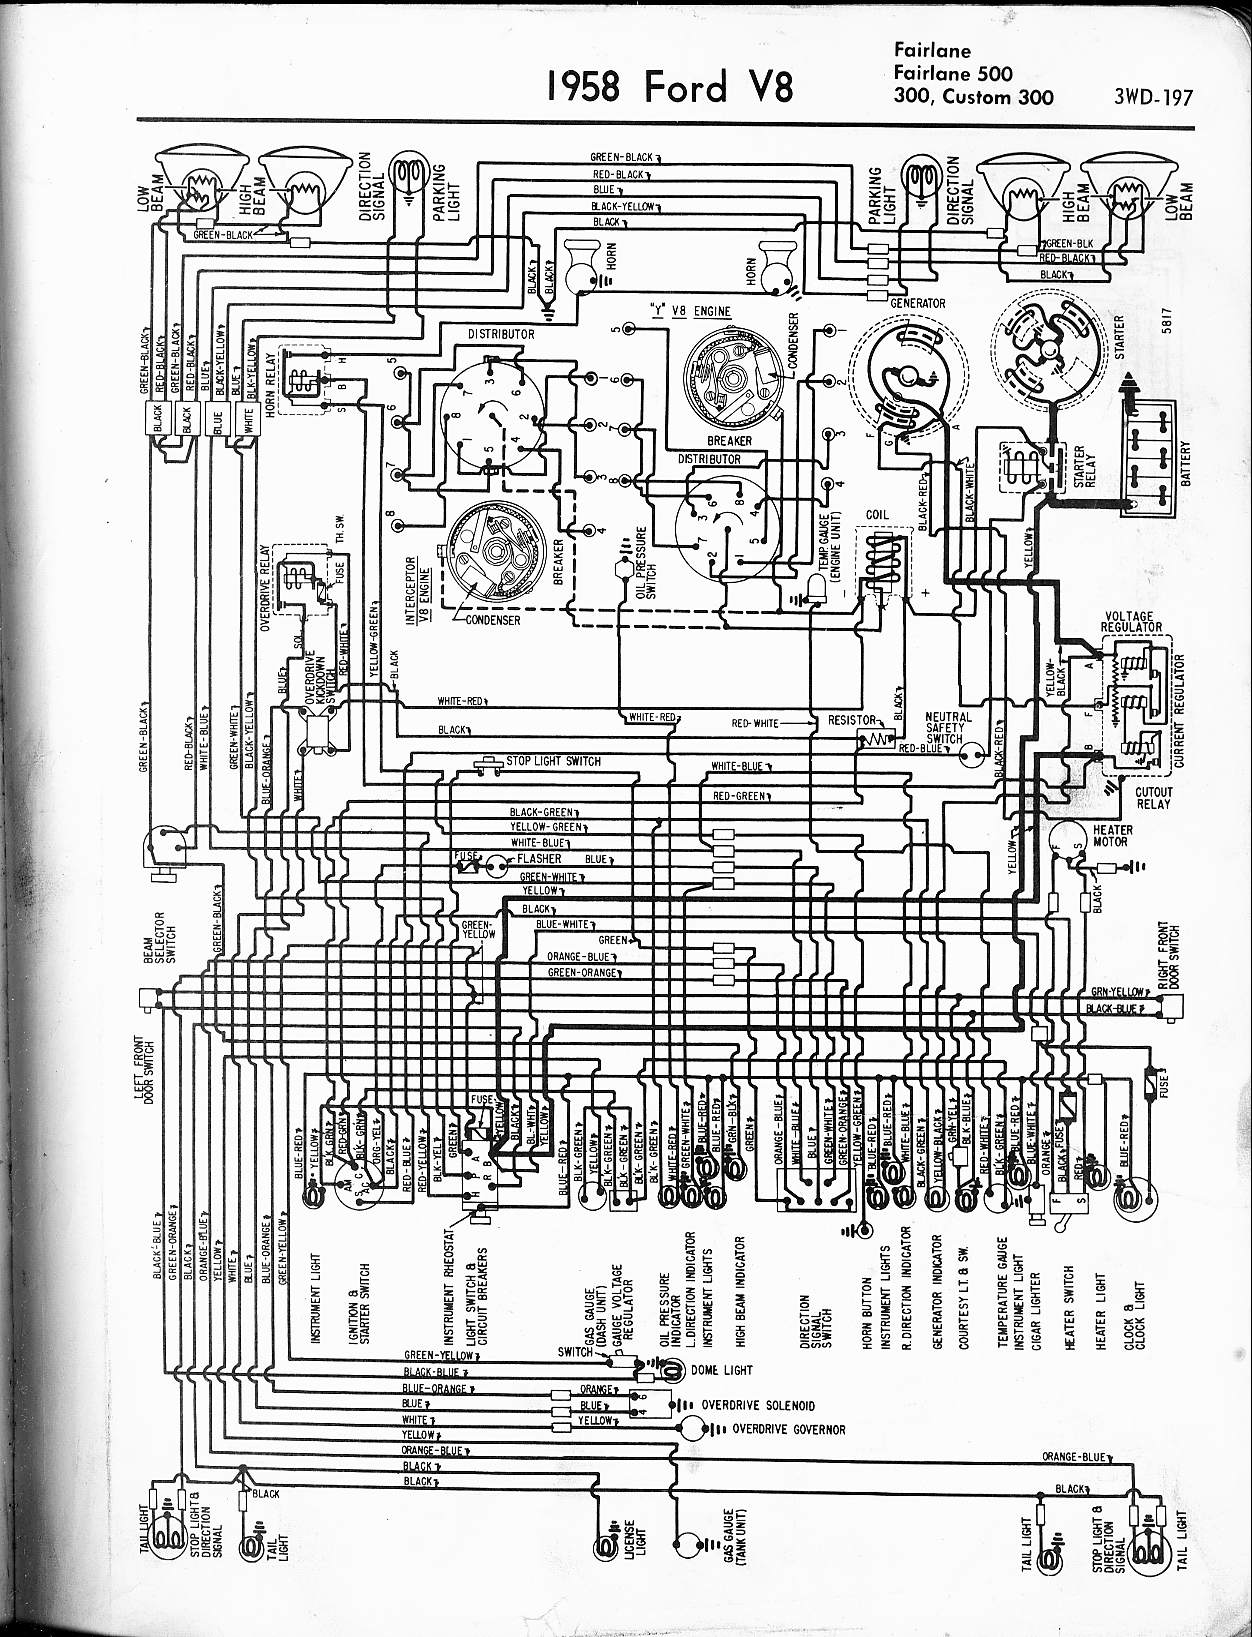 1956 Ford Fairlane Wiring Diagram Simple Wiring Diagram 66 Ford F100 Wiring  Diagram 1955 Ford F100 Wiring Diagram